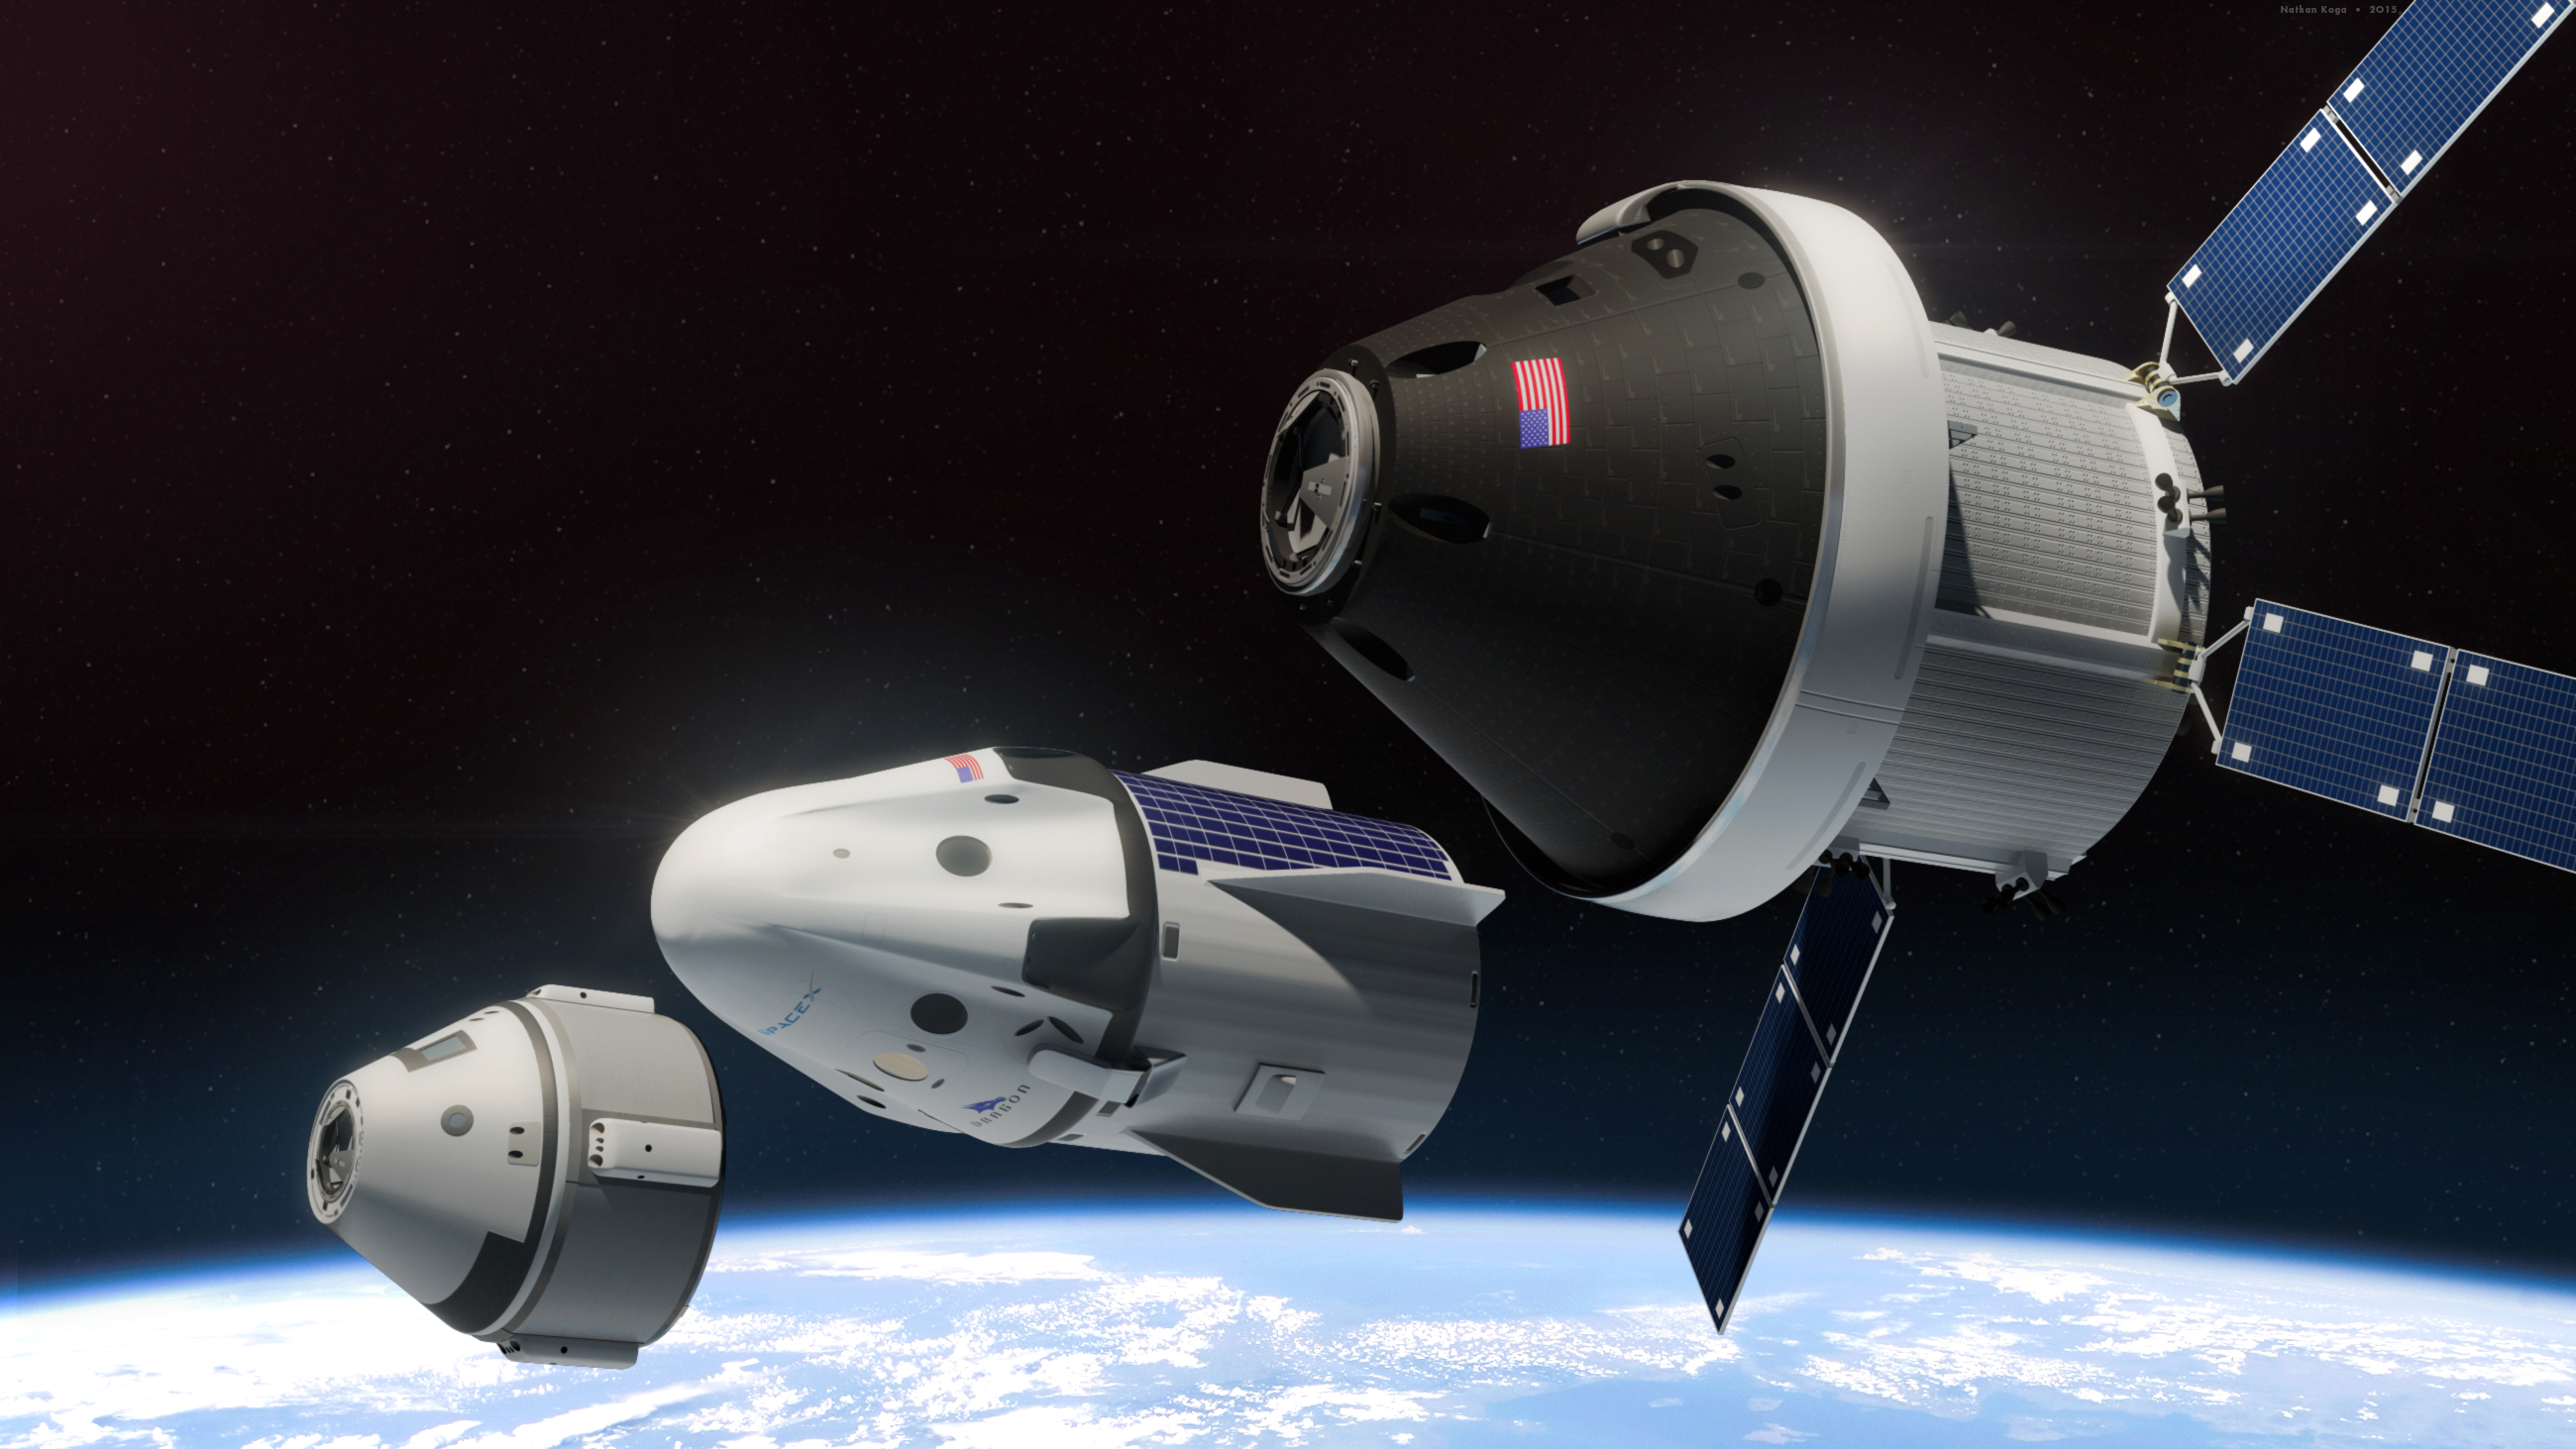 What's causing SpaceX's Falcon Heavy delays? - teslarati.com